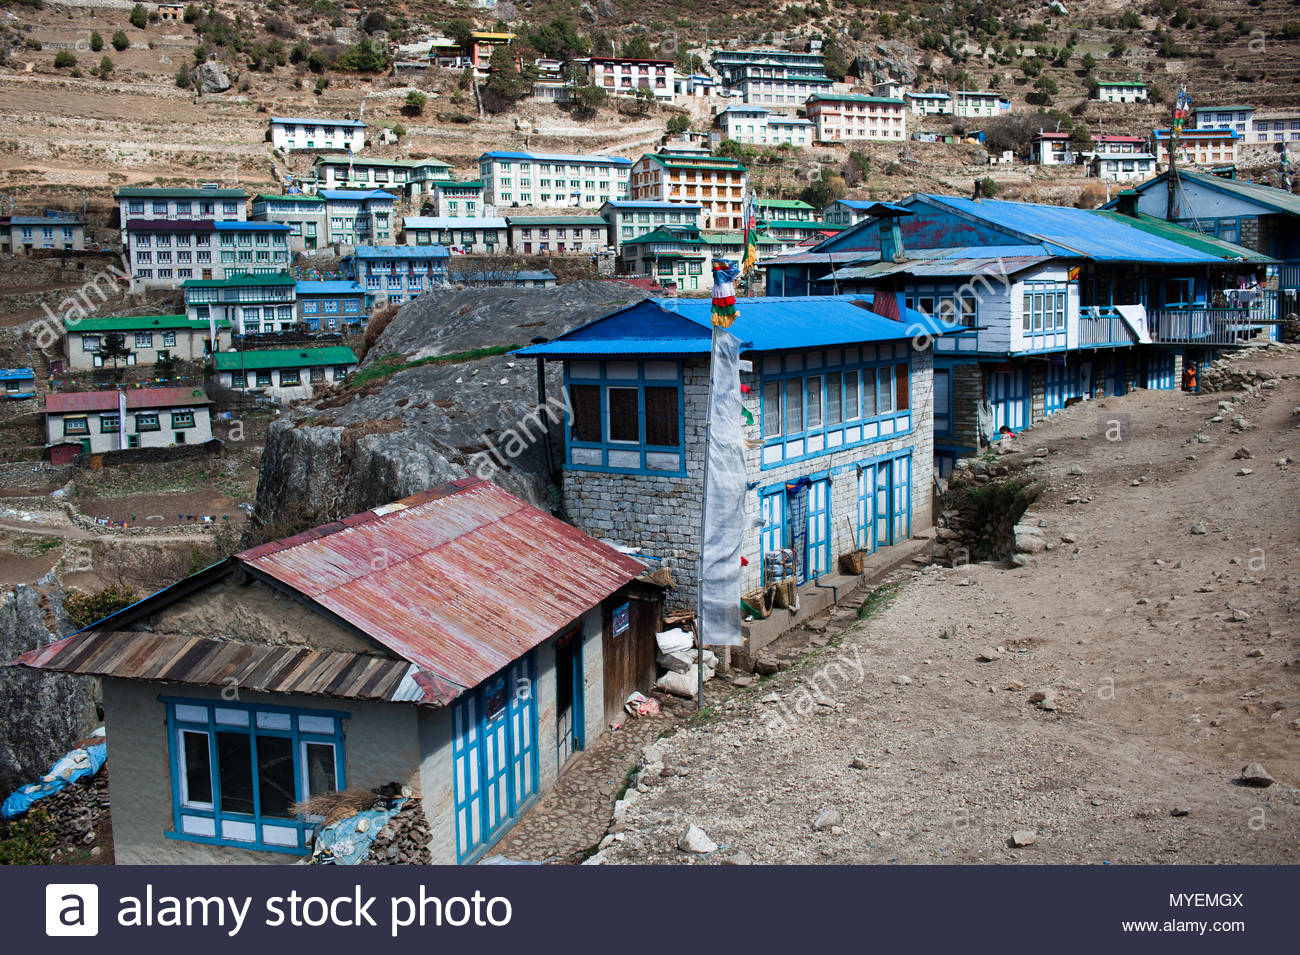 Typical mountain village architecture in the Khumbu valley of the Himalayas. - Stock Image